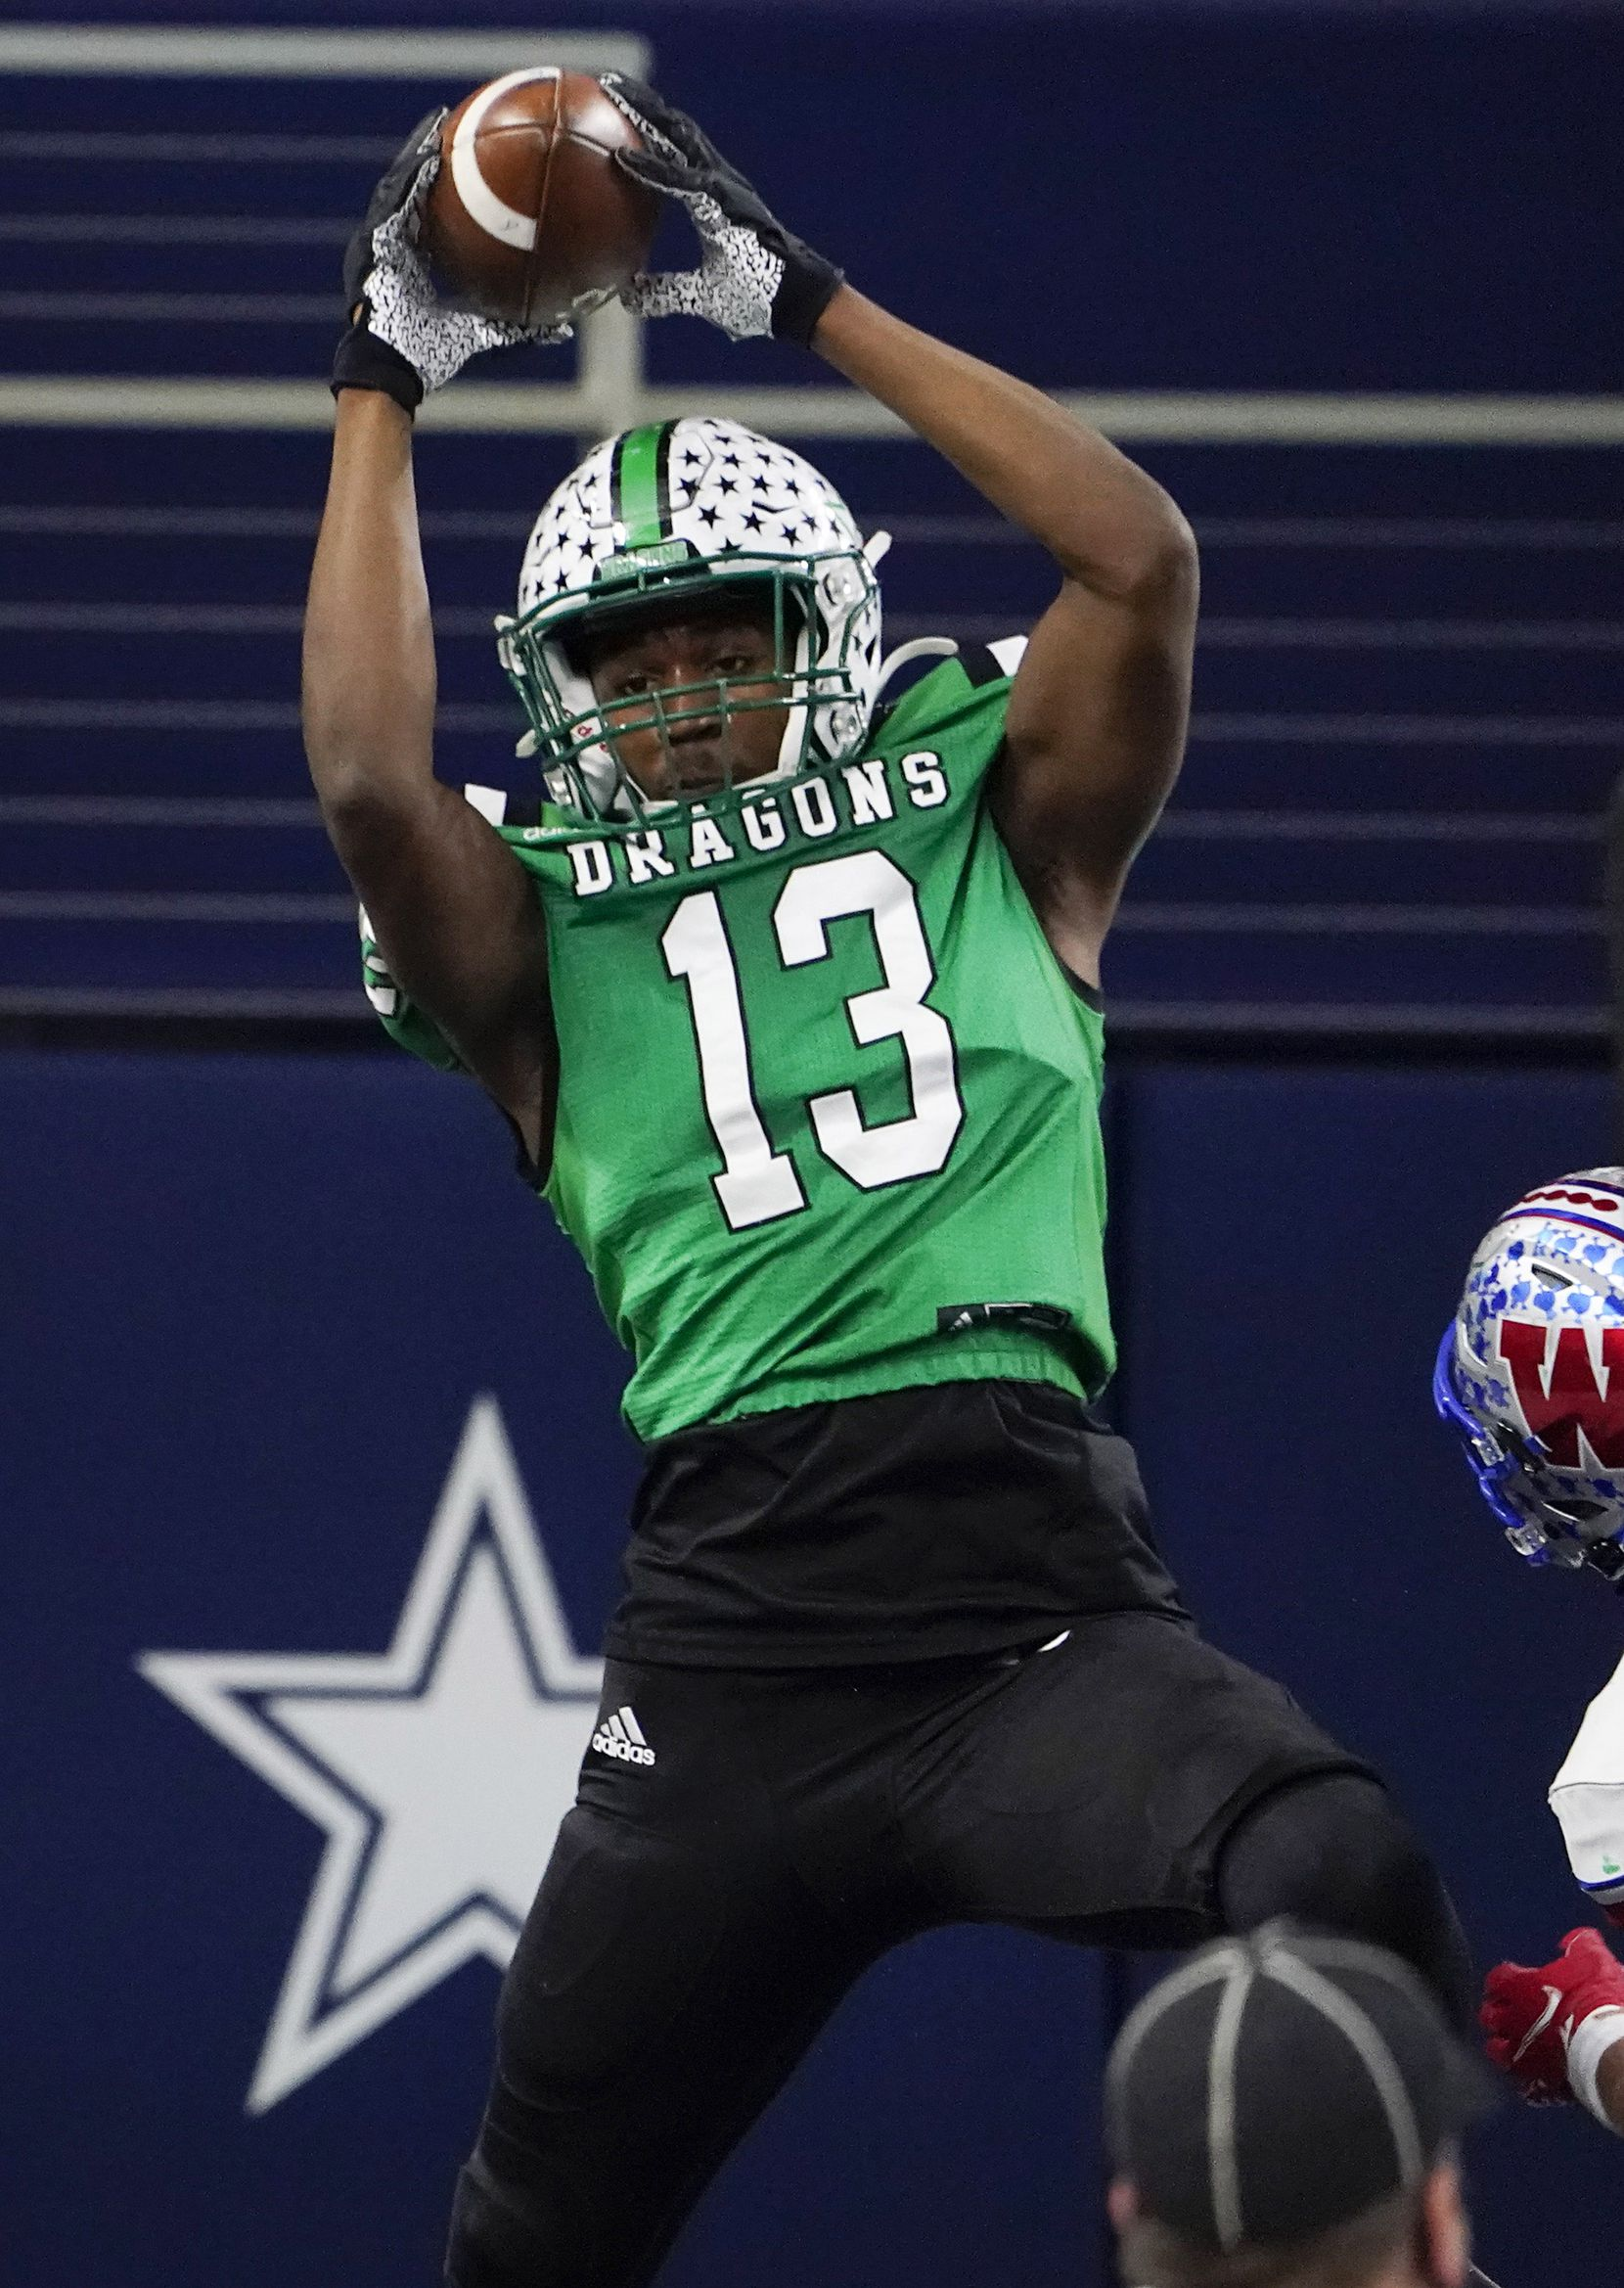 Southlake Carroll tight end RJ Maryland (13) catches a touchdown pass from quarterback Quinn Ewers during the fourth quarter of the Class 6A Division I state football championship game against Austin Westlake at AT&T Stadium on Saturday, Jan. 16, 2021, in Arlington, Texas. Westlake won the game 52-34.